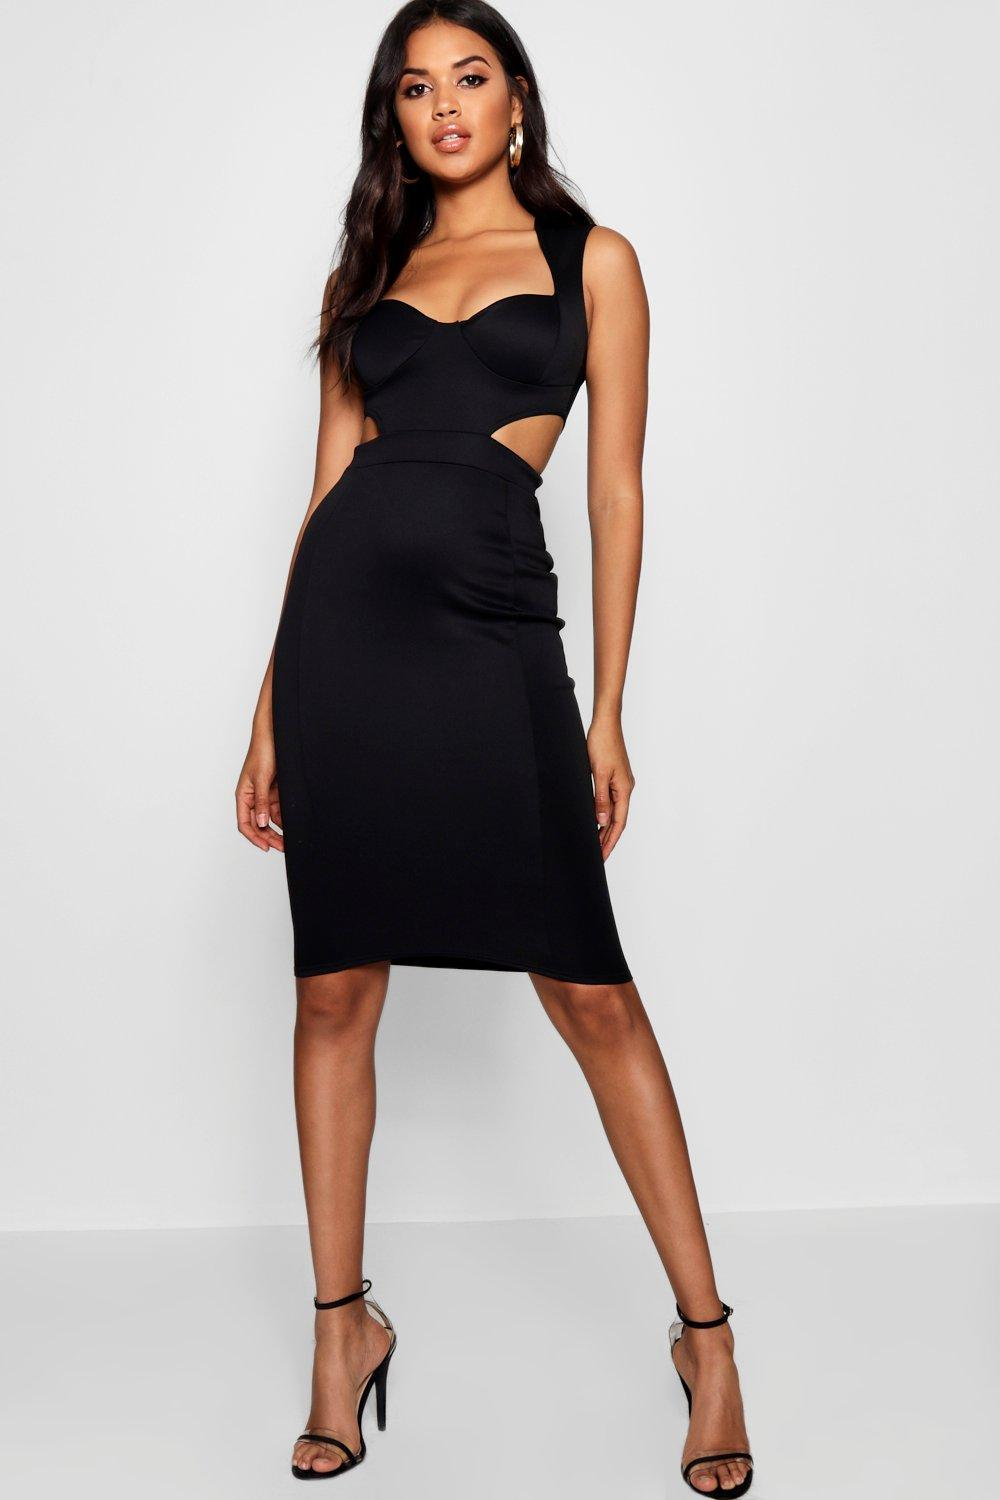 Birdie Sweetheart Cut Out Side Bodycon Dress At Boohoo Com